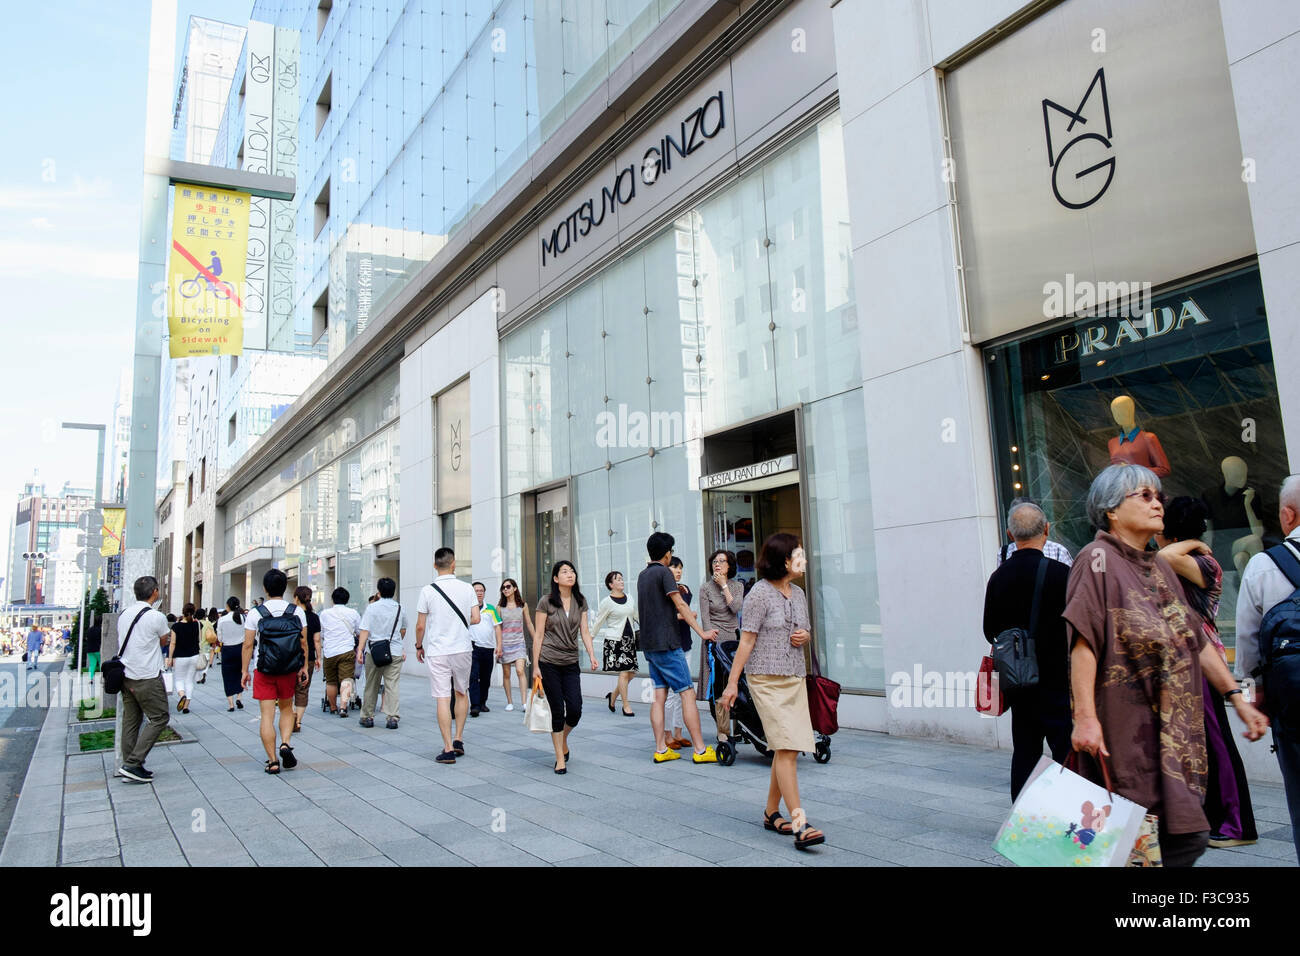 Busy street in upmarket shopping district of Ginza in Tokyo Japan - Stock Image